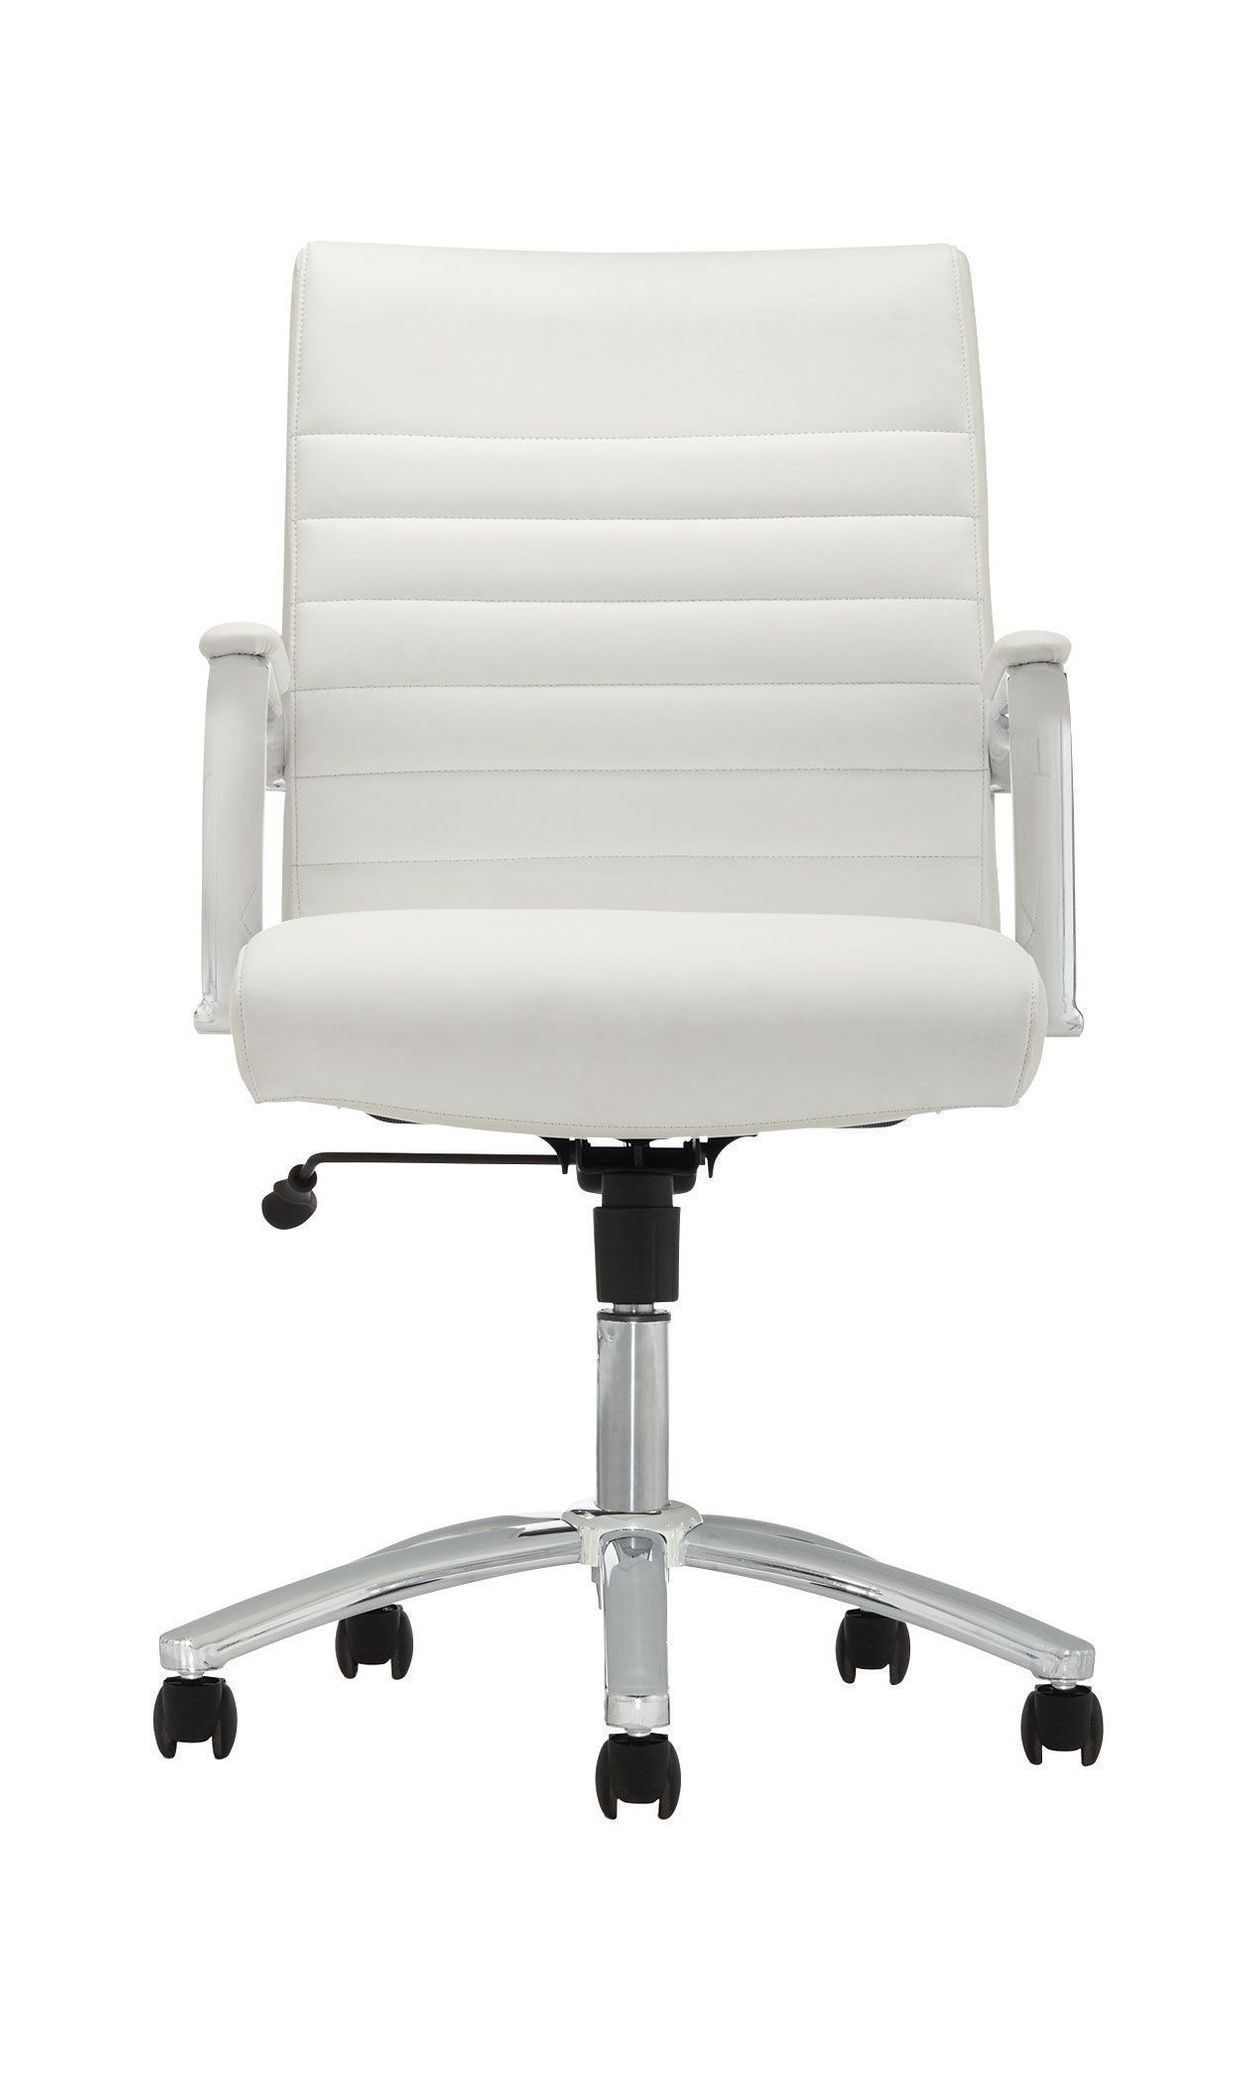 Realspace® Modern Comfort Winsley Bonded Leather Managerial Mid-Back Chair,  White/Silver Item # 907932